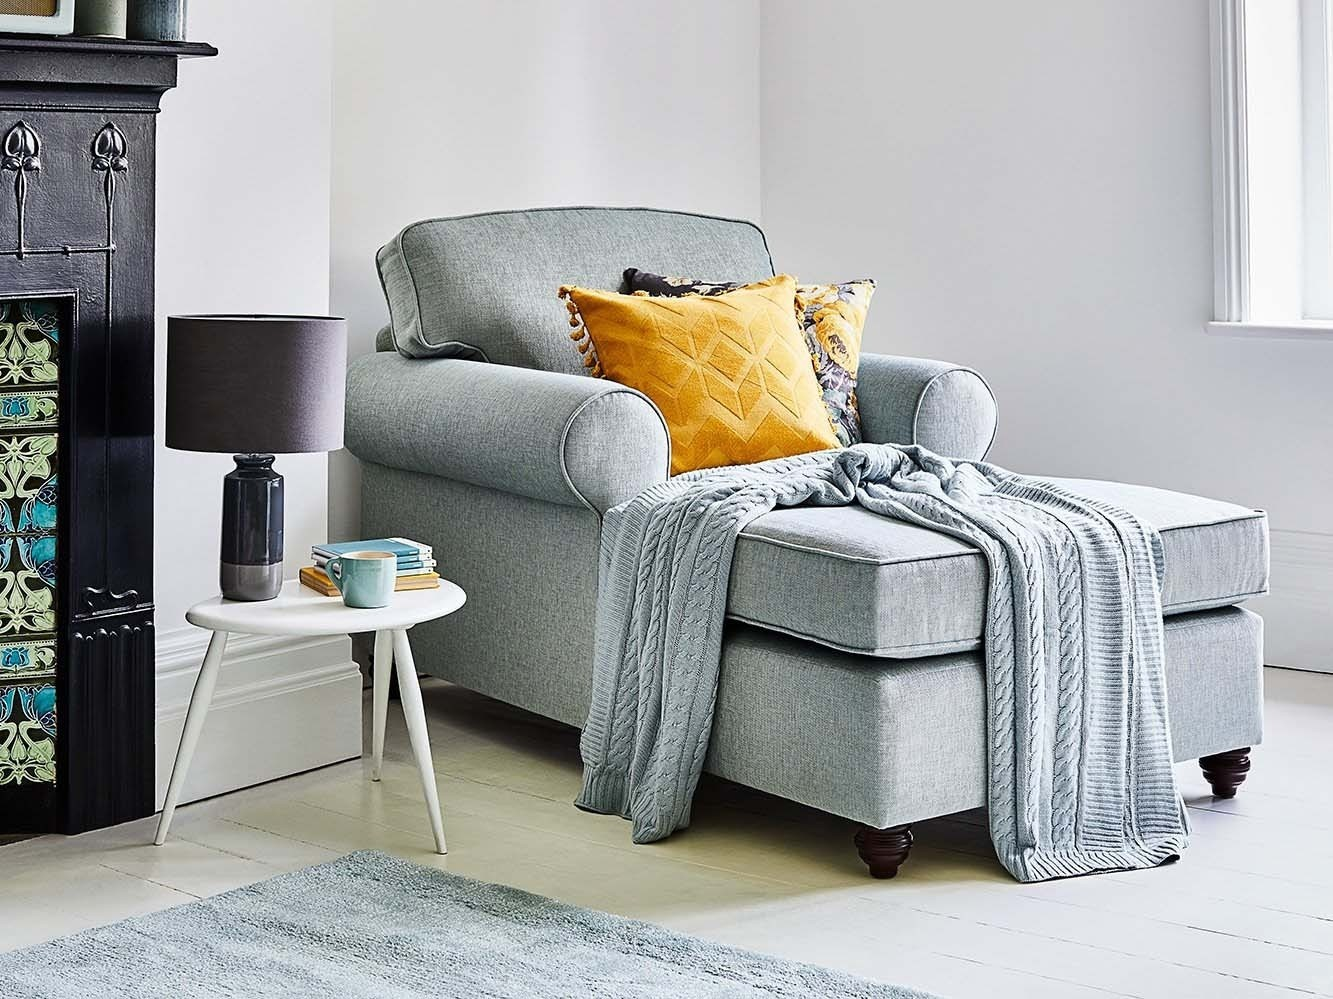 This is how I look in Stain Resistant Linen Cotton Nordic Blue with reflex foam seat cushions